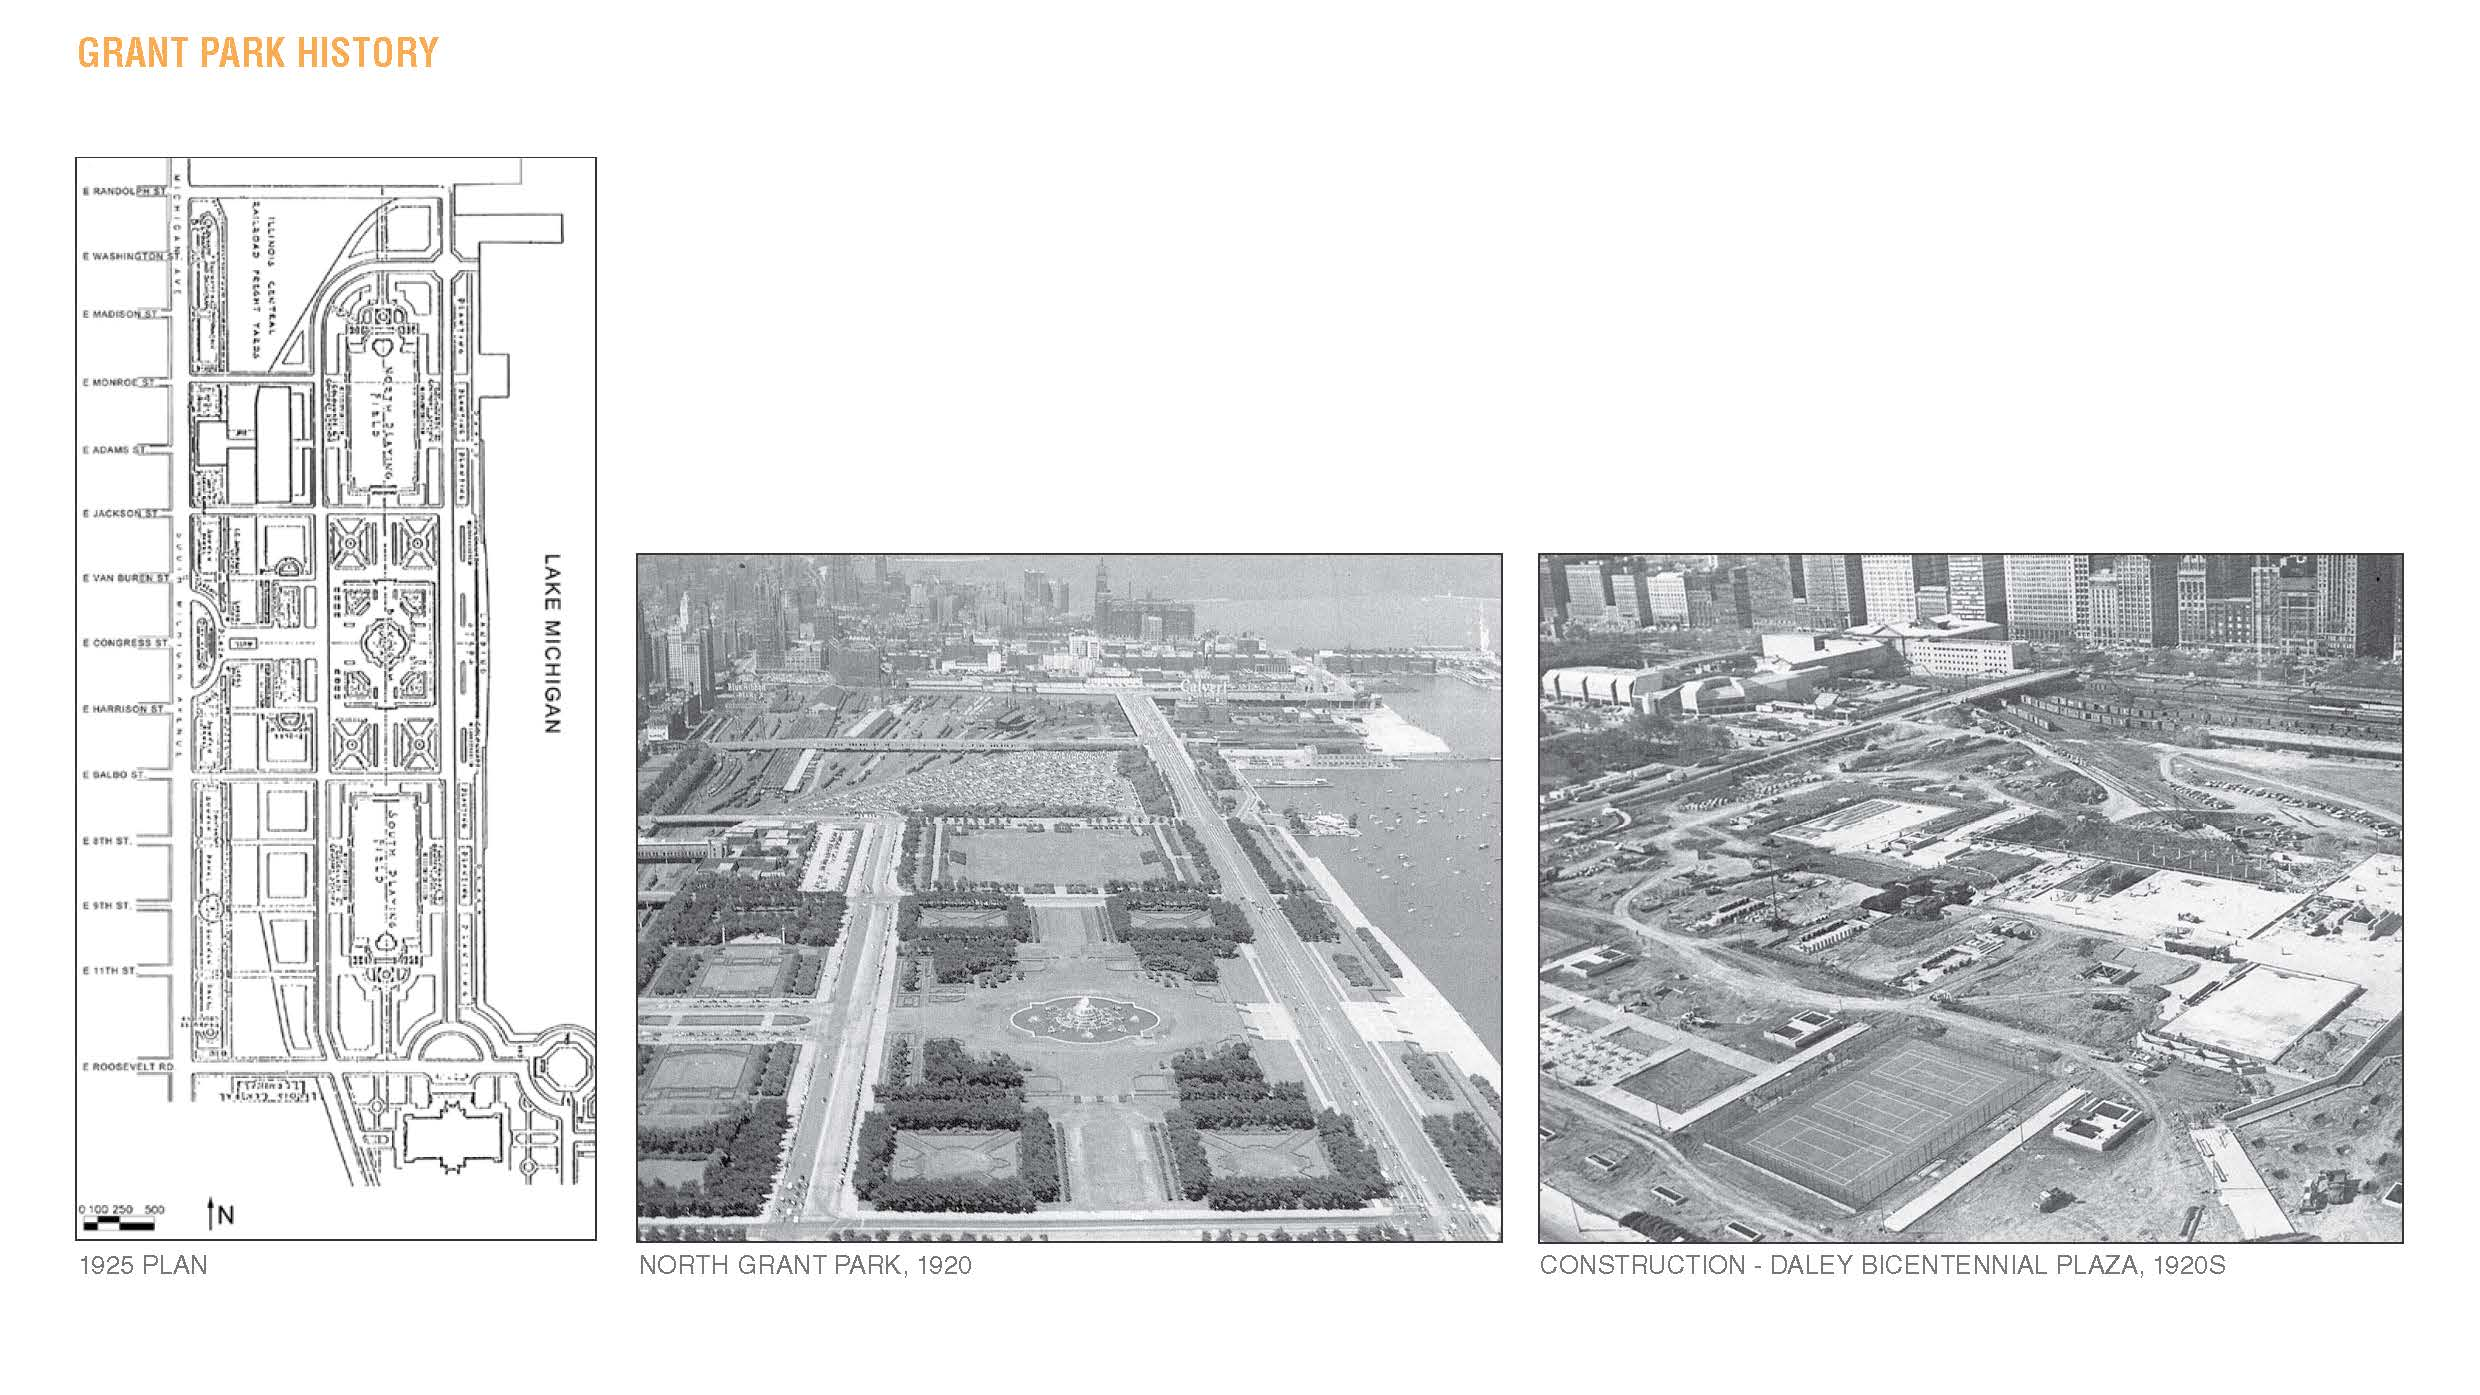 7741_20160713_South Grant Park Charrette Presentation_low res_Page_13.jpg